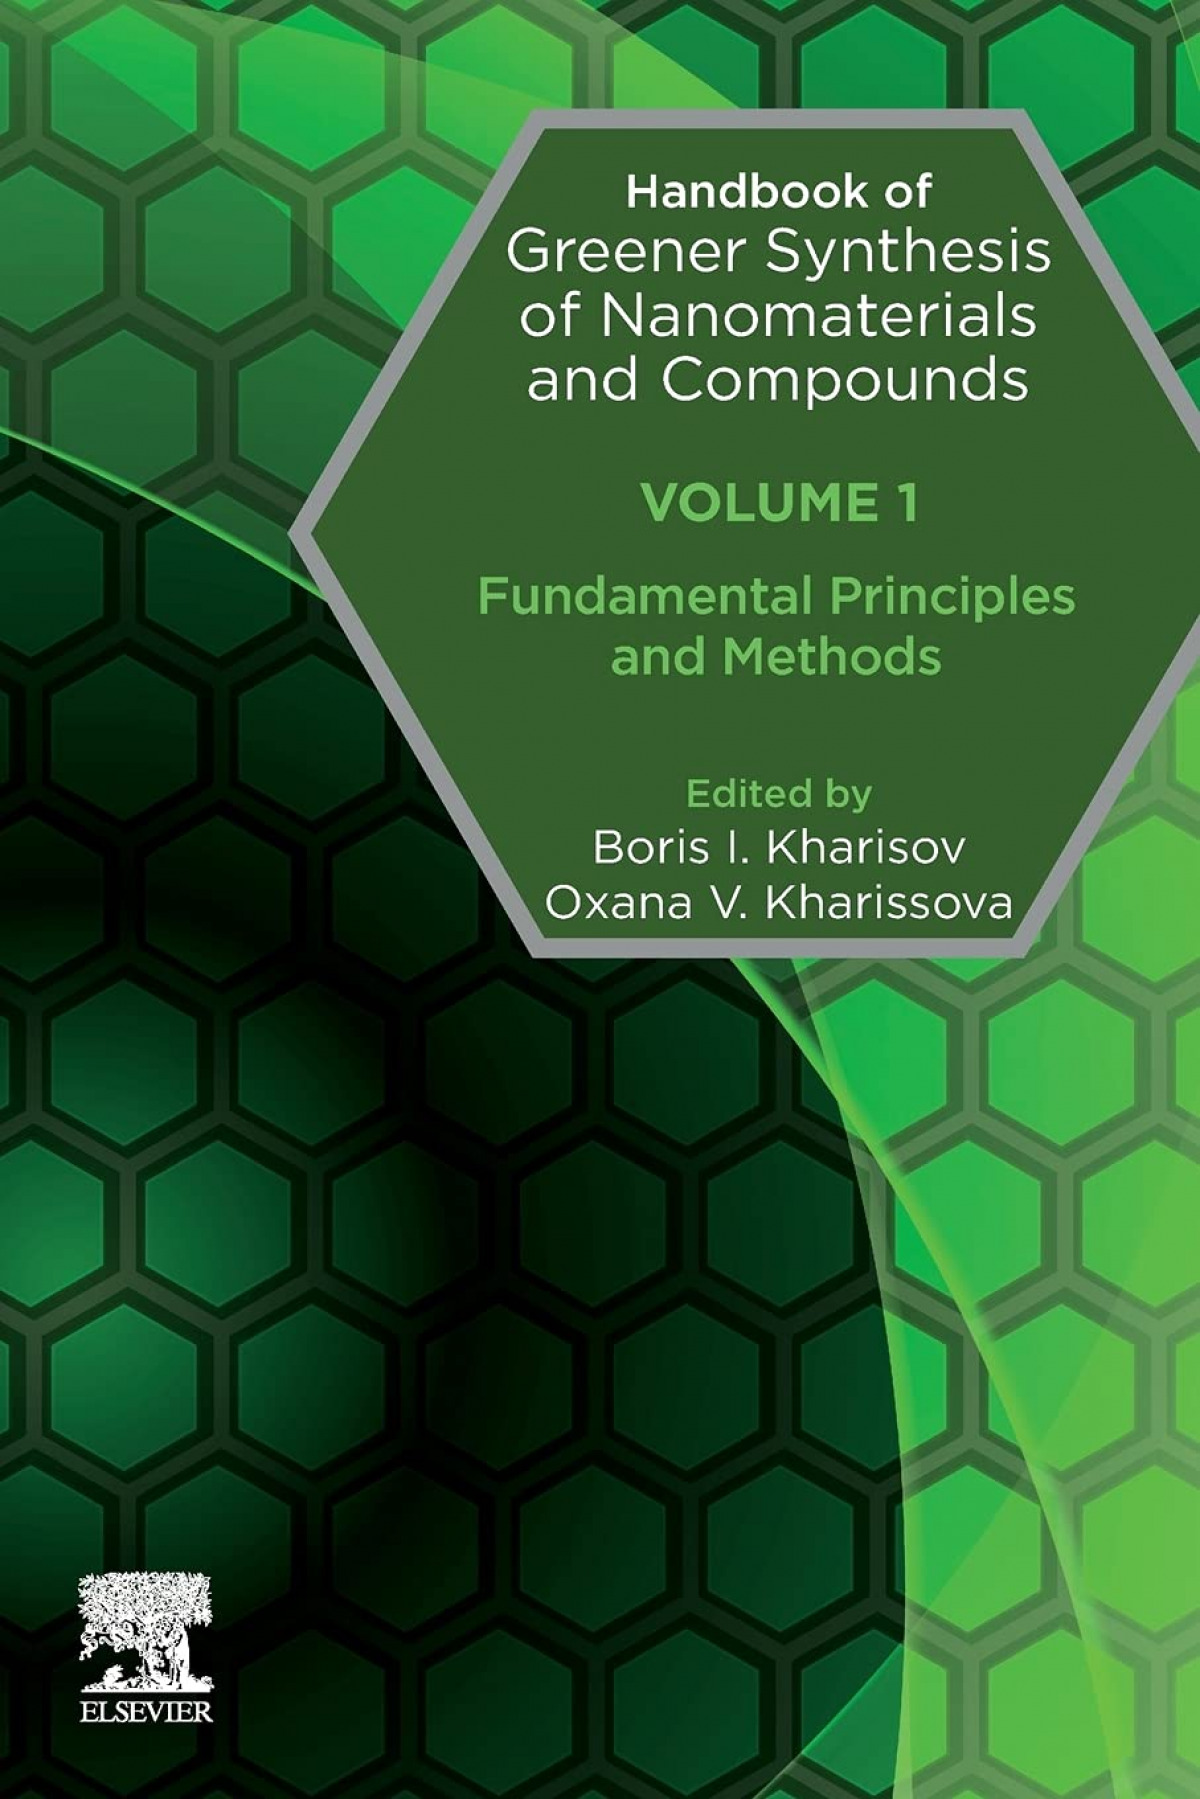 HANDBOOK OF GREENER SYNTHESIS NANOMATERIALS COMPOUNDS